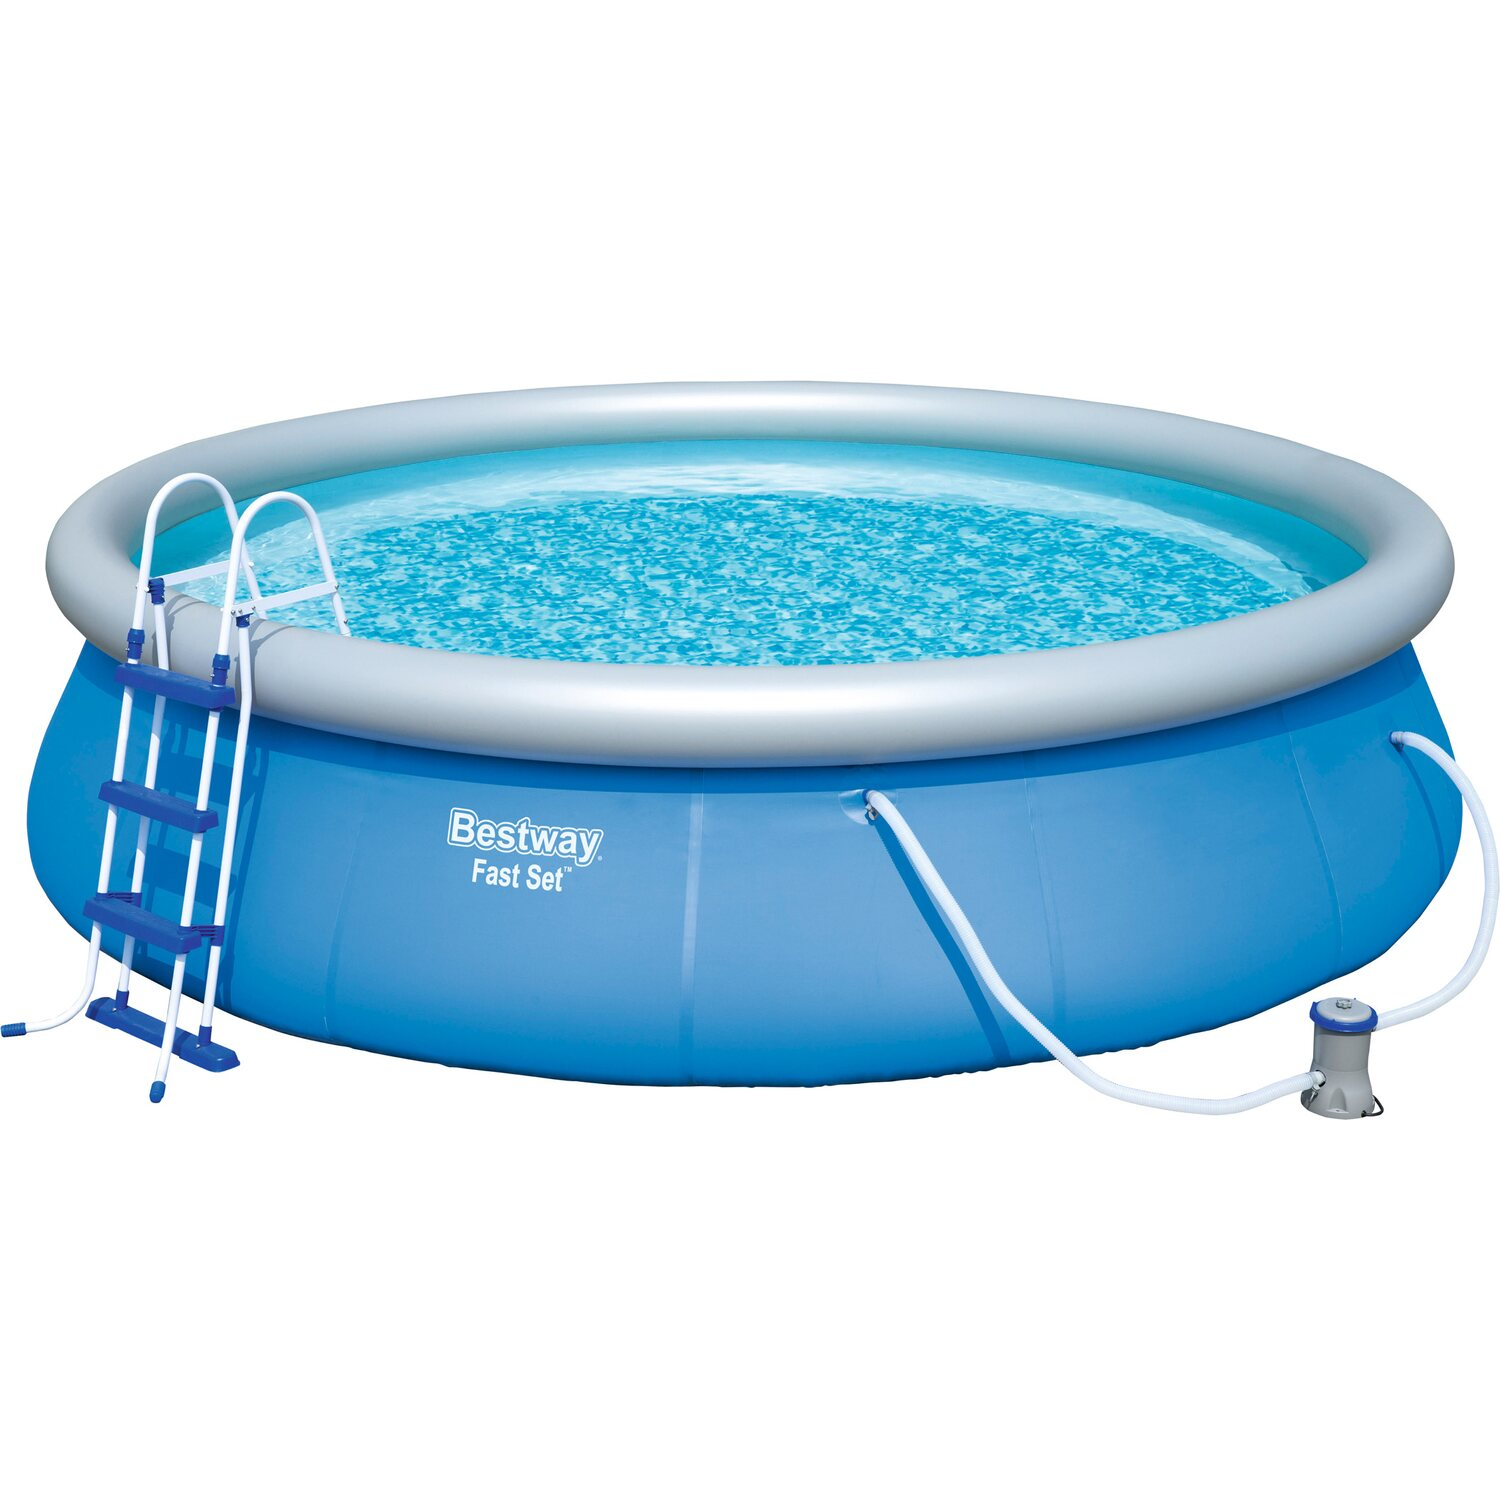 Bestway fast set pool kaufen bei obi for Obi pool set